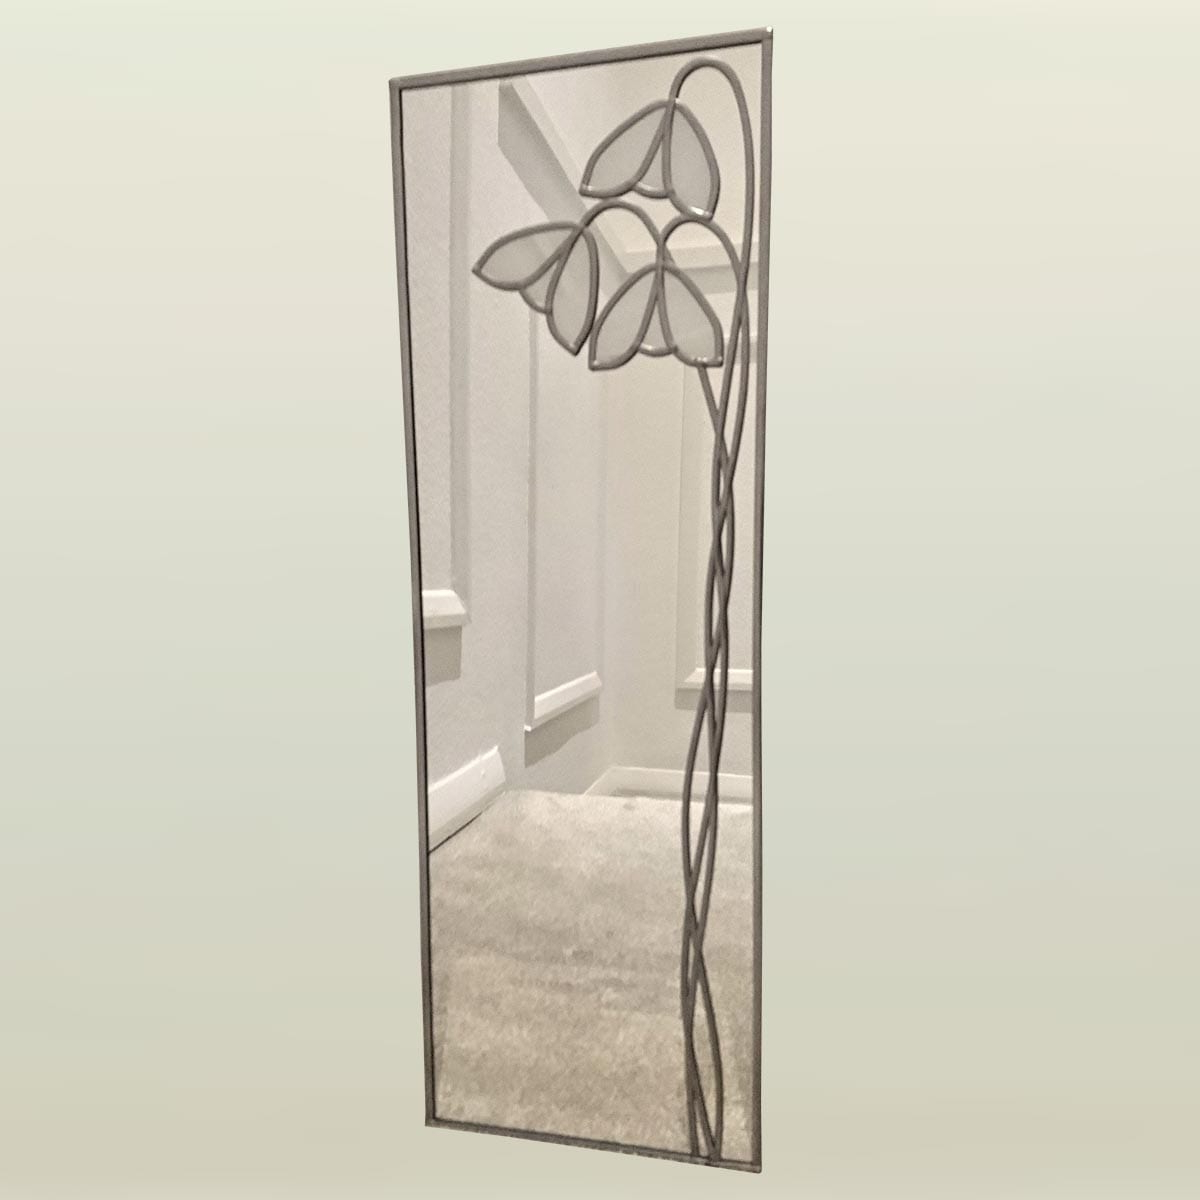 2019 Deco Wall Mirrors Inside Deco Snowdrop Wall Mirror 20X61Cm (8X24In) (View 2 of 20)